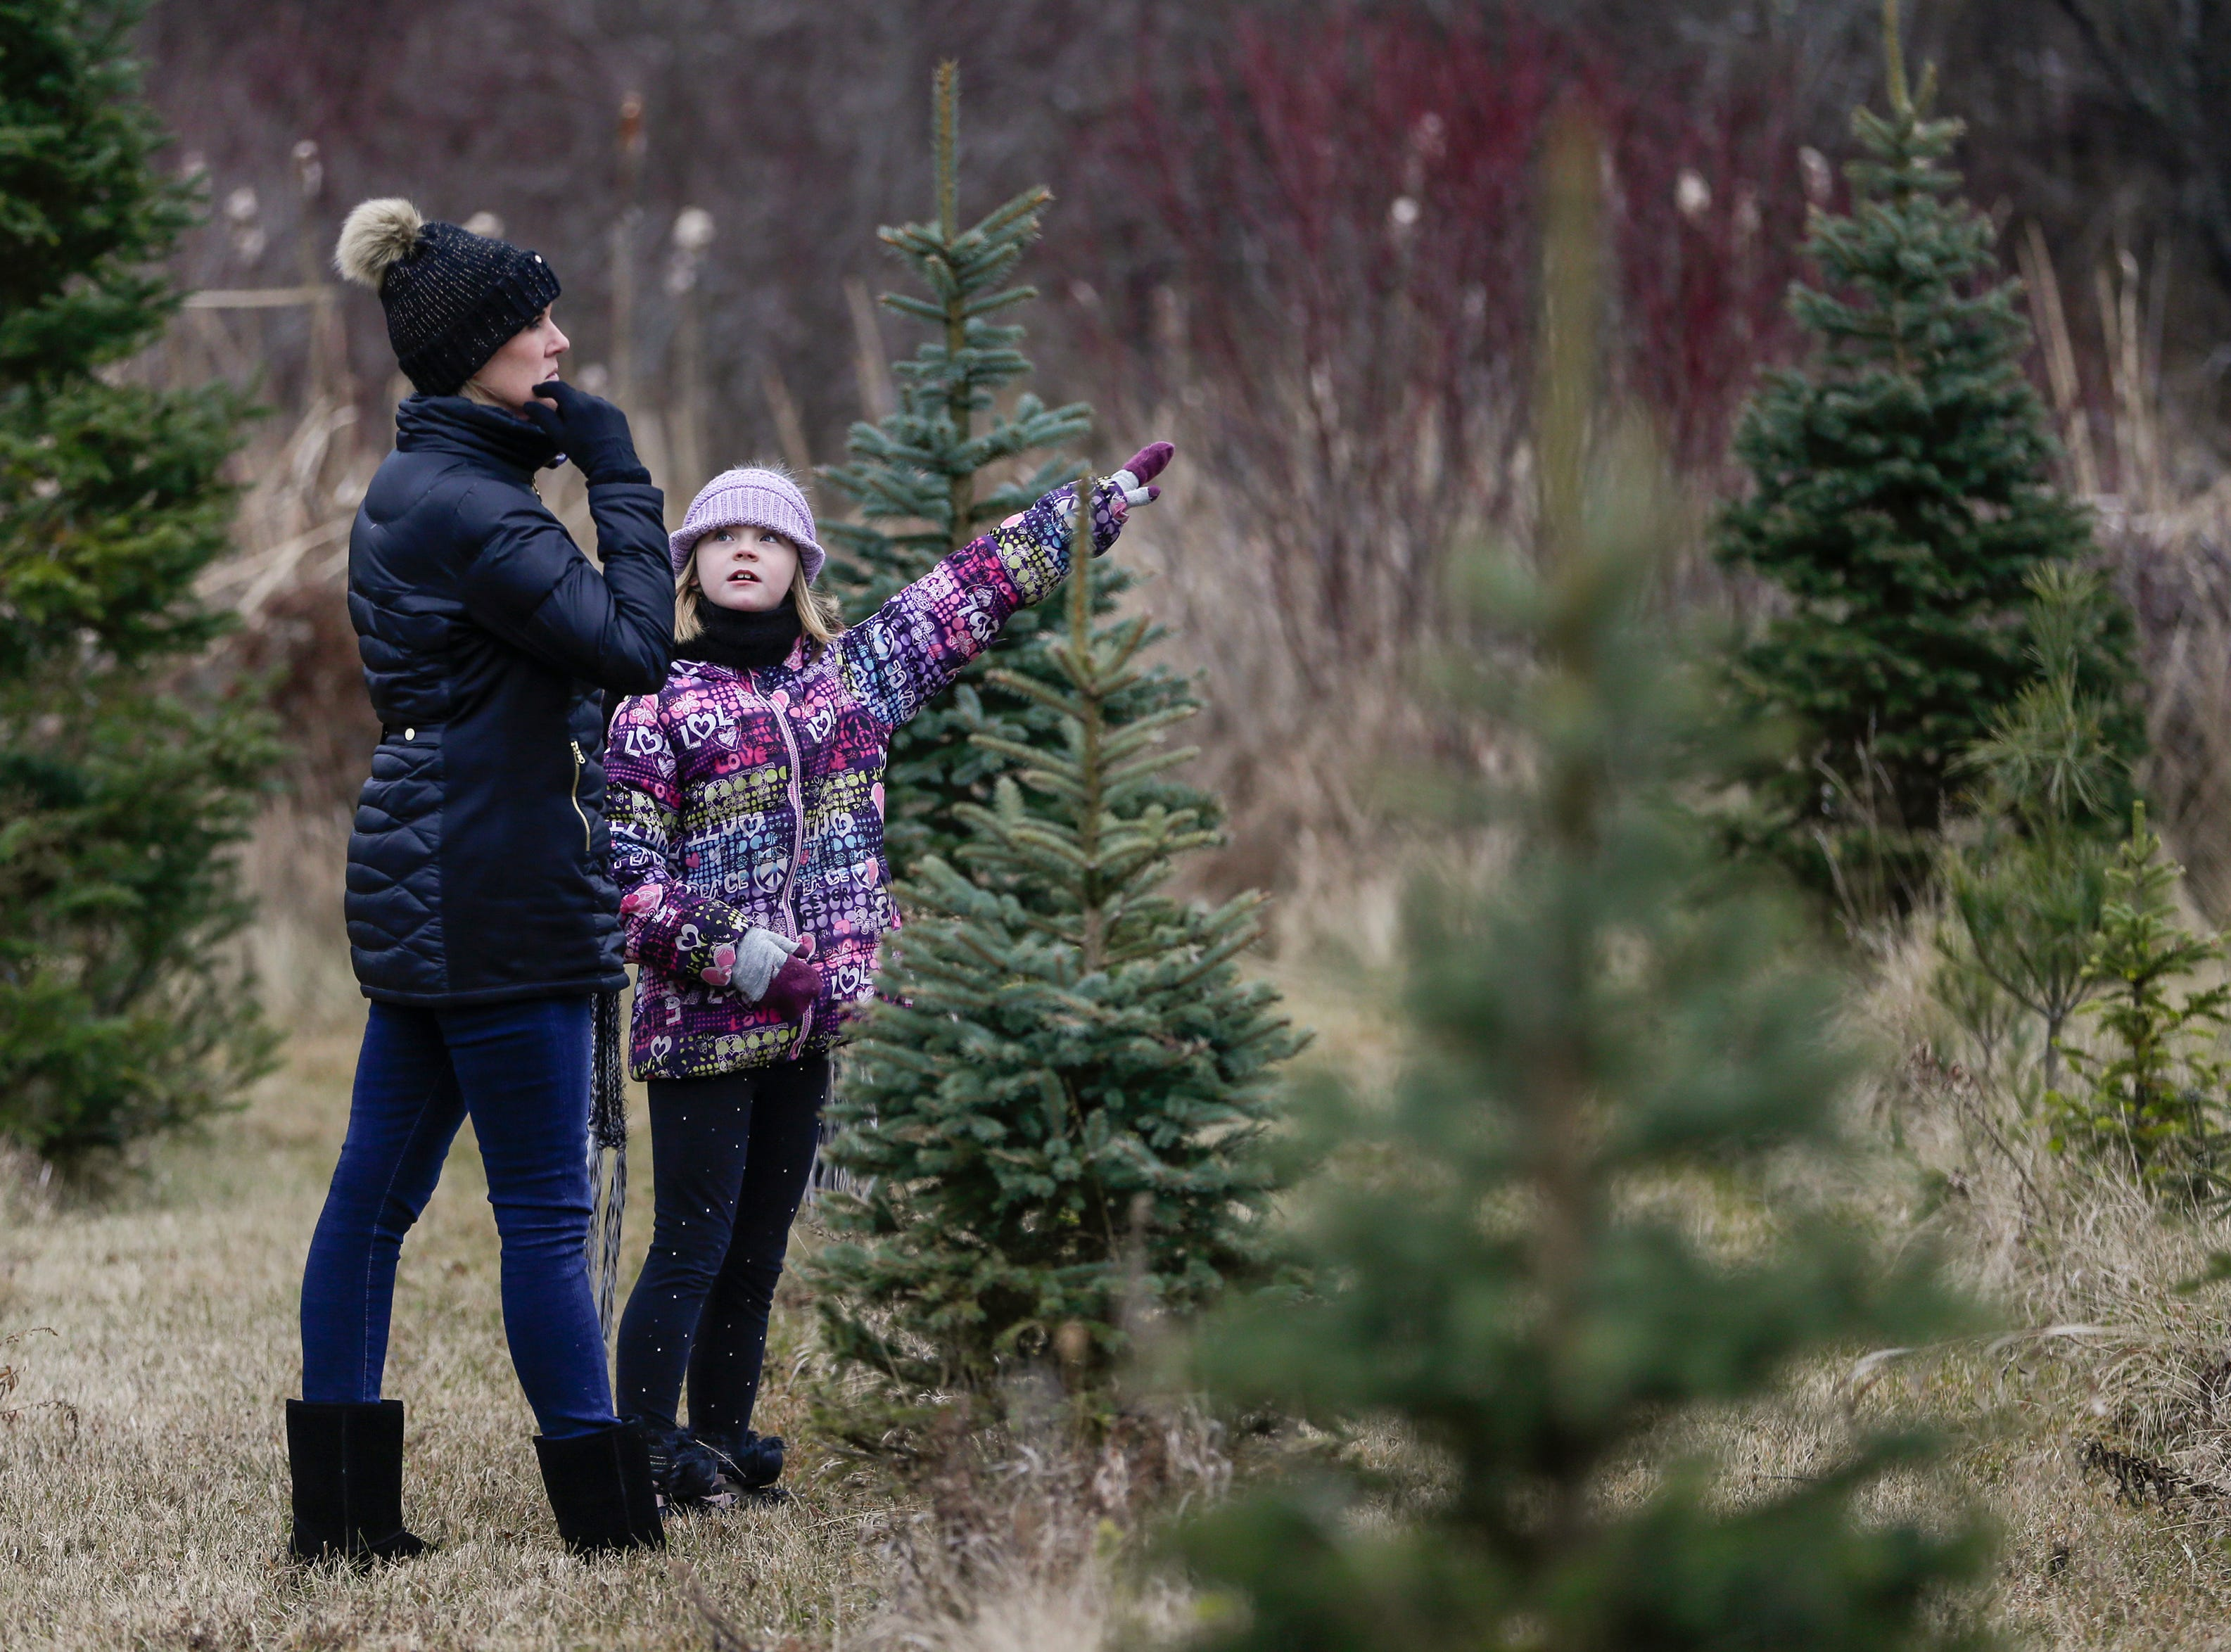 Brooklyn Zigmunt ,10, of Manitowoc, points out a tree to her mom Stephanie at Taylor Trees Saturday, December 1, 2018, in Mishicot, Wis. The Zigmunt family went looking across the entire tree farm until they found the perfect tree for the holidays. Joshua Clark/USA TODAY NETWORK-Wisconsin